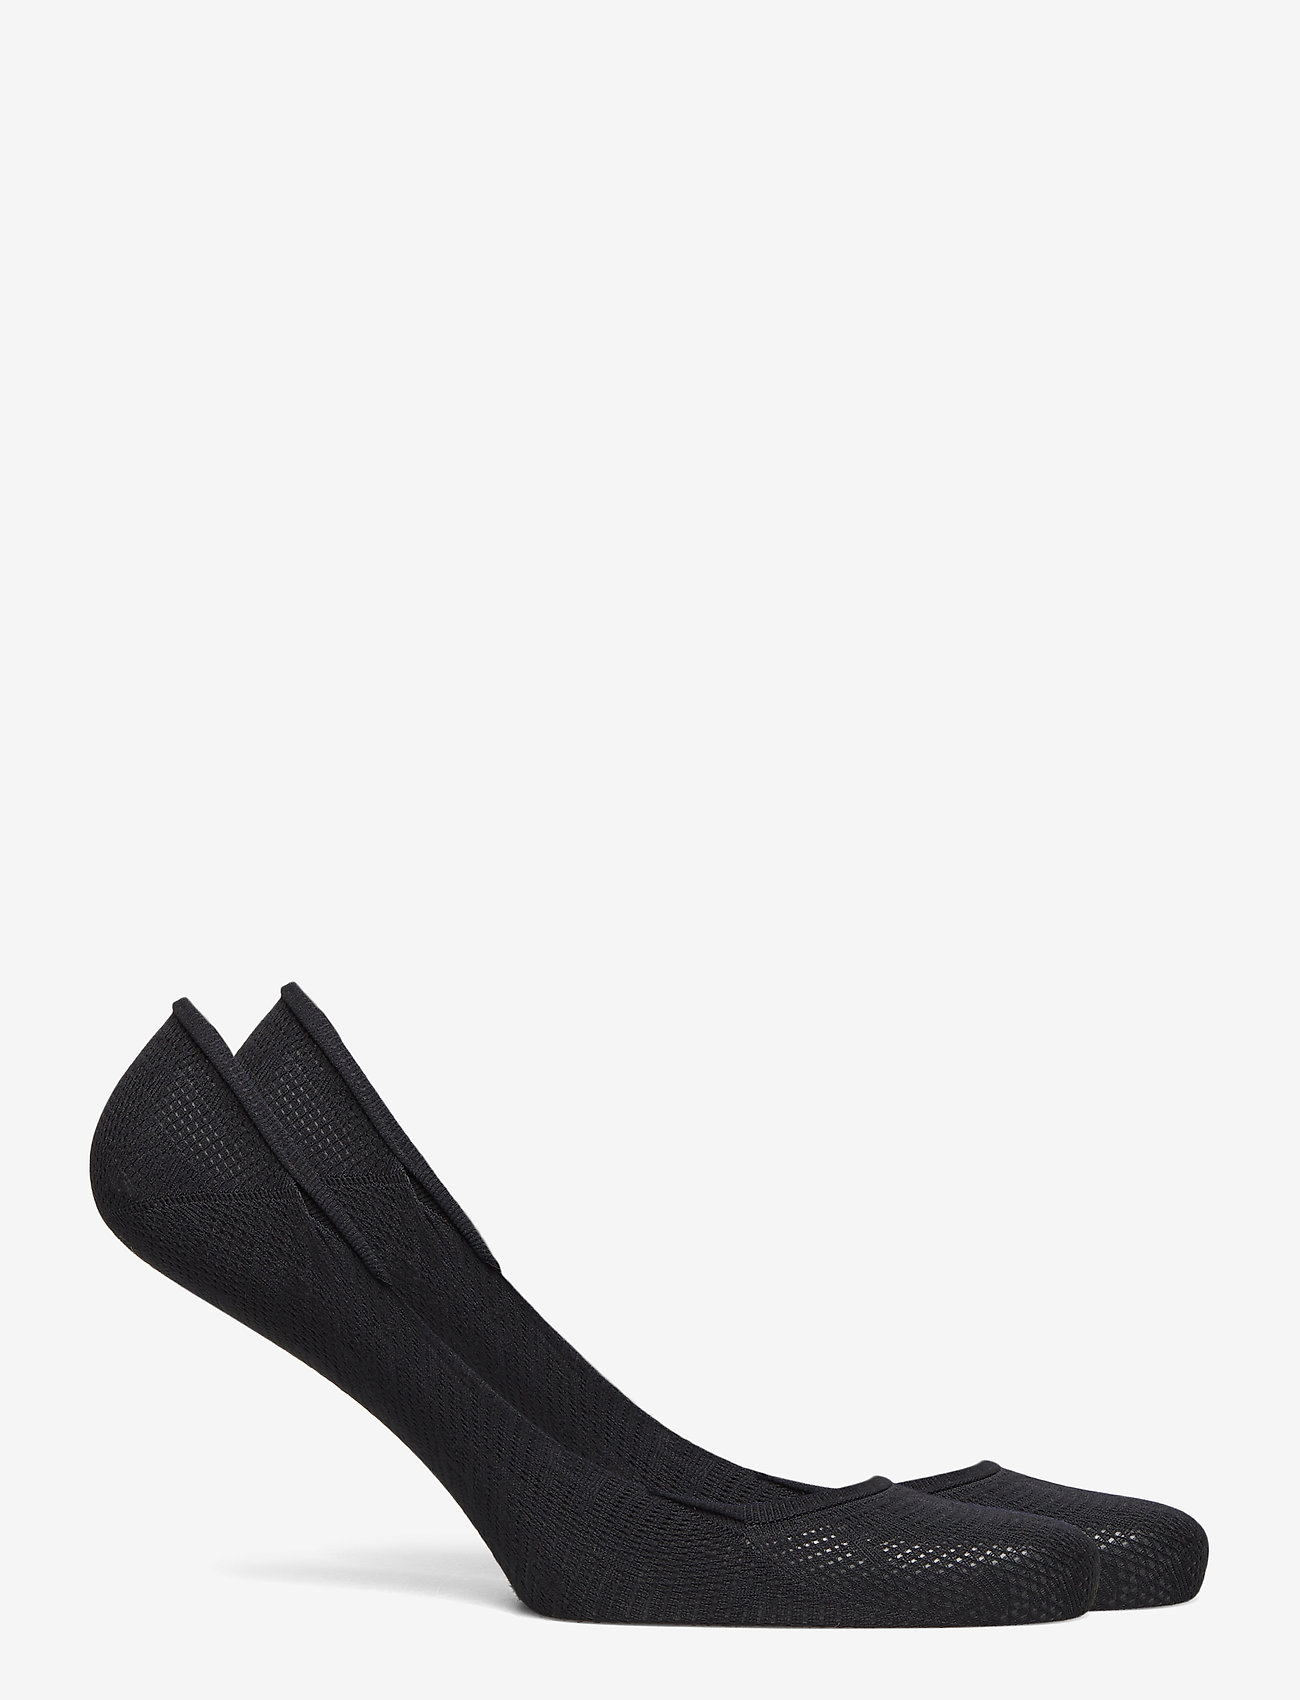 Tommy Hilfiger - TH WOMEN FOOTIE 2P TH BURN OUT - footies - black - 1